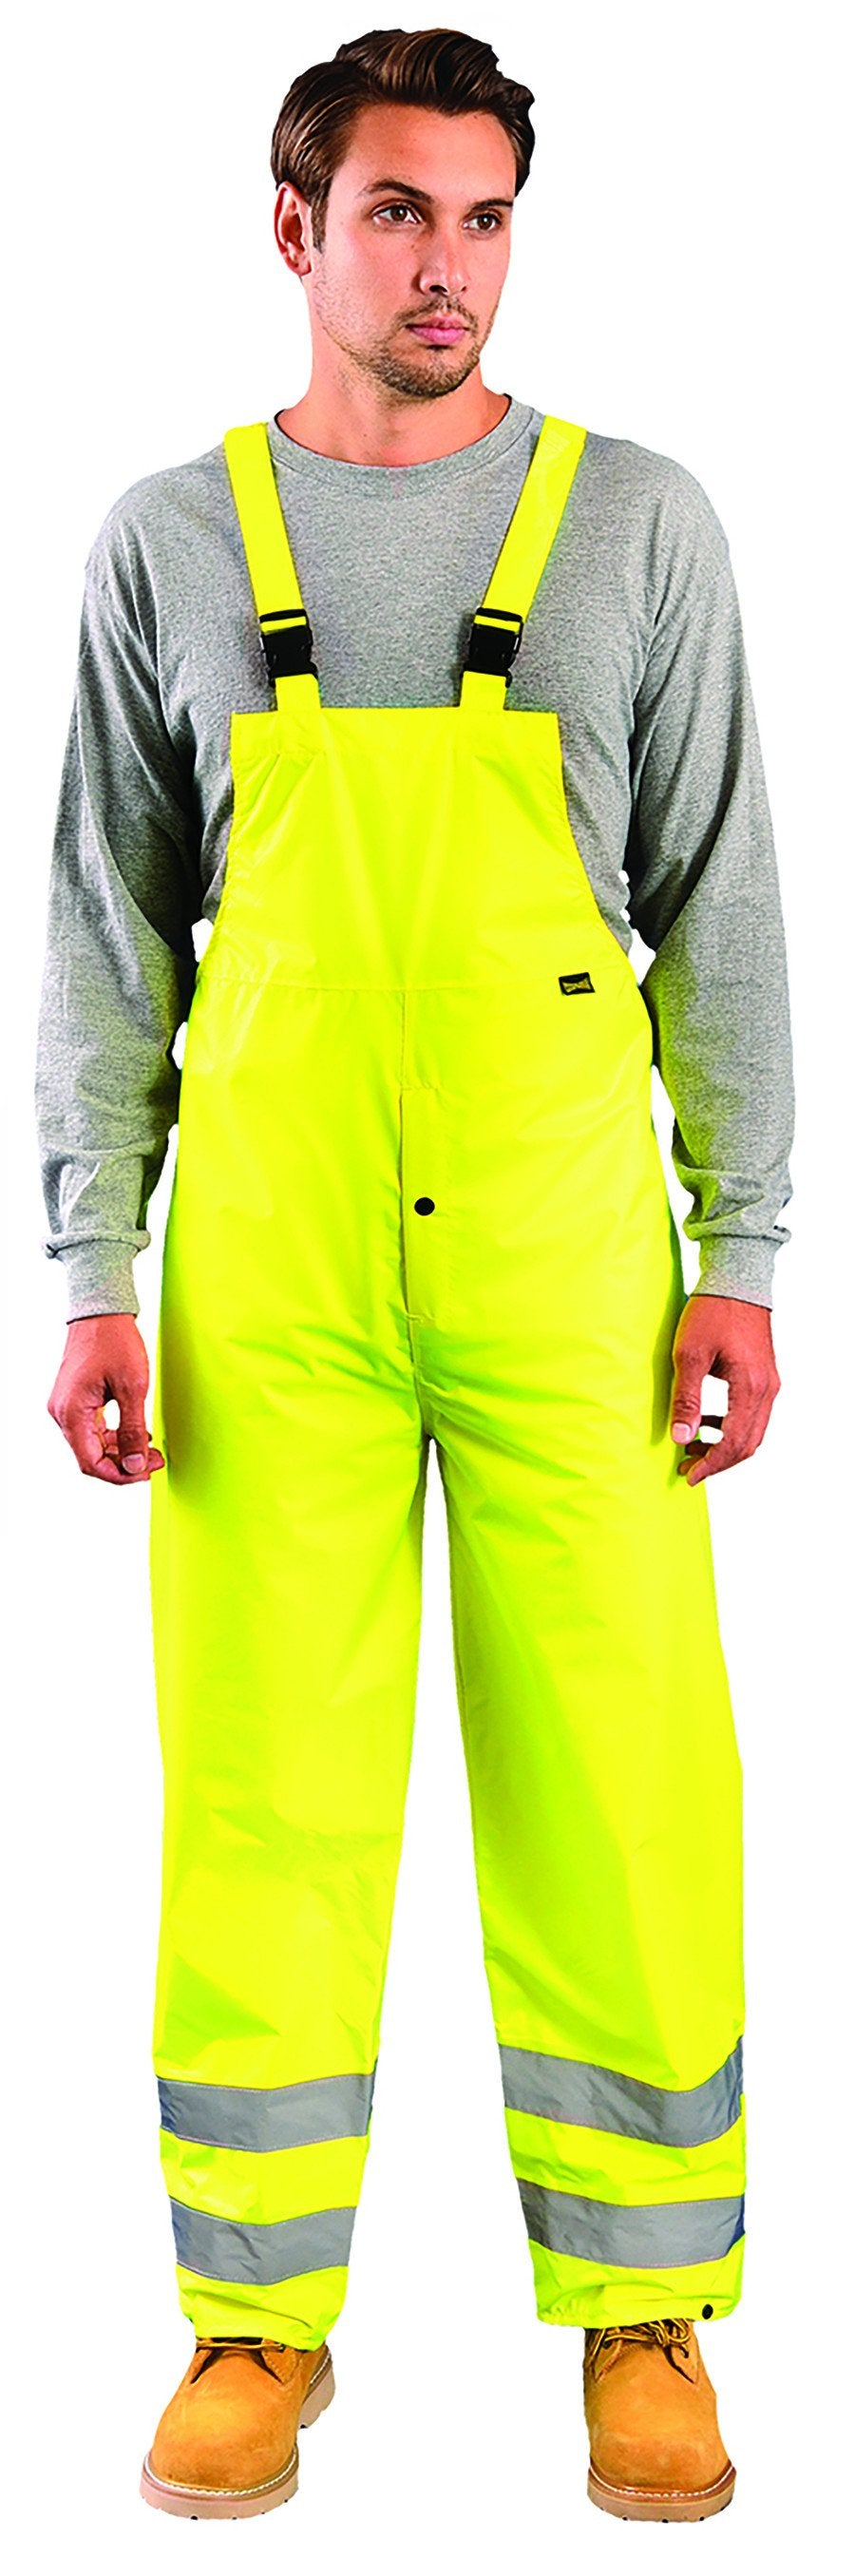 Premium Breathable Jacket - 5XL / Fluorescent Yellow